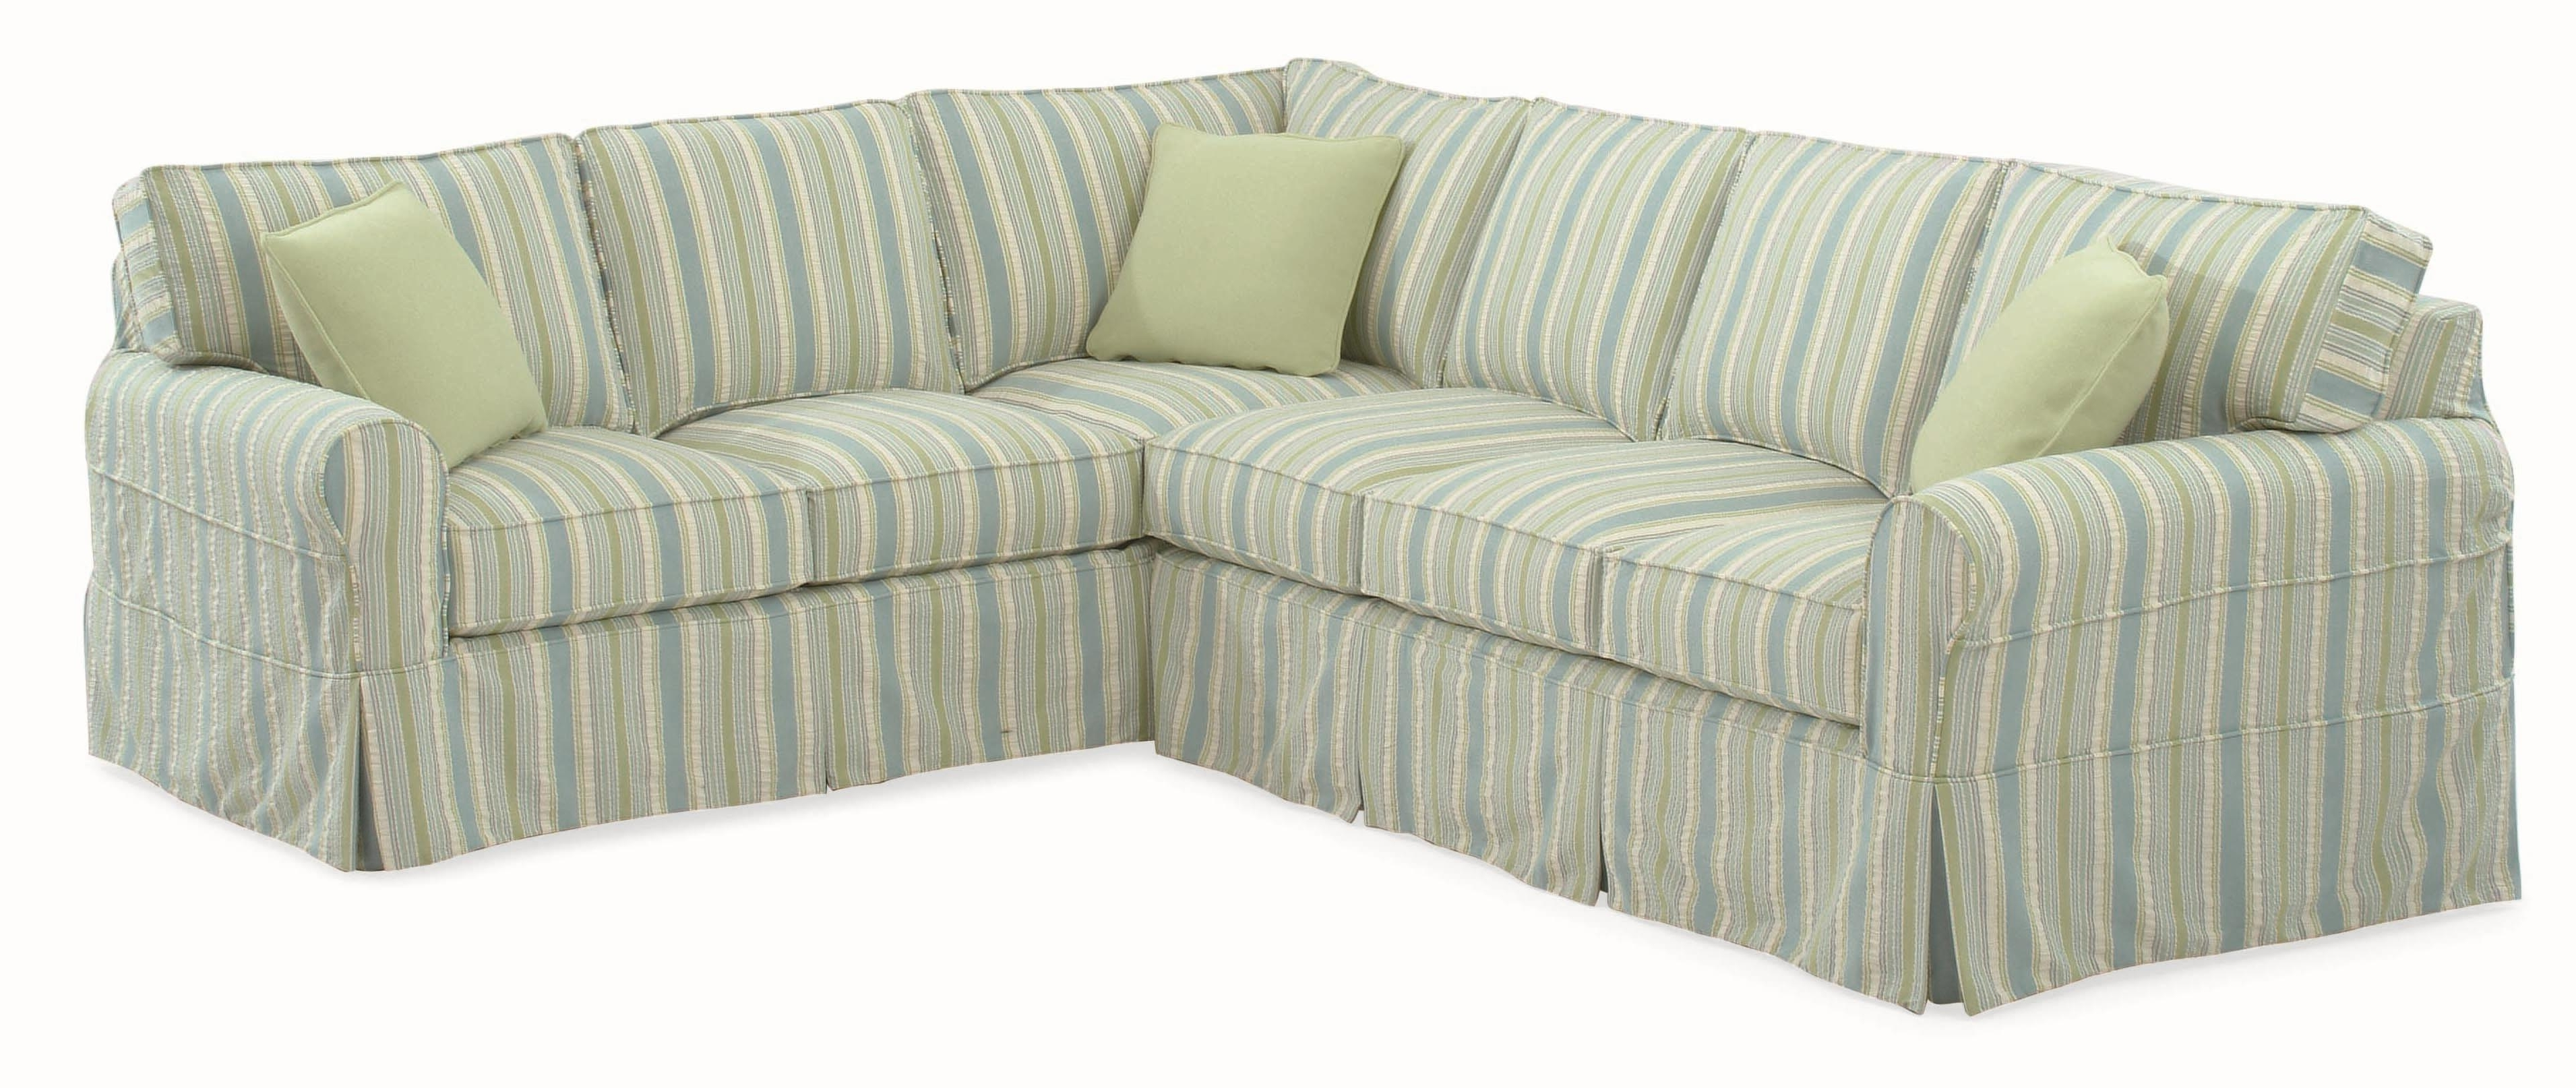 Braxton Culler 728 Casual Sectional Sofa With Rolled Arms And For Latest Braxton Sectional Sofas (View 3 of 20)